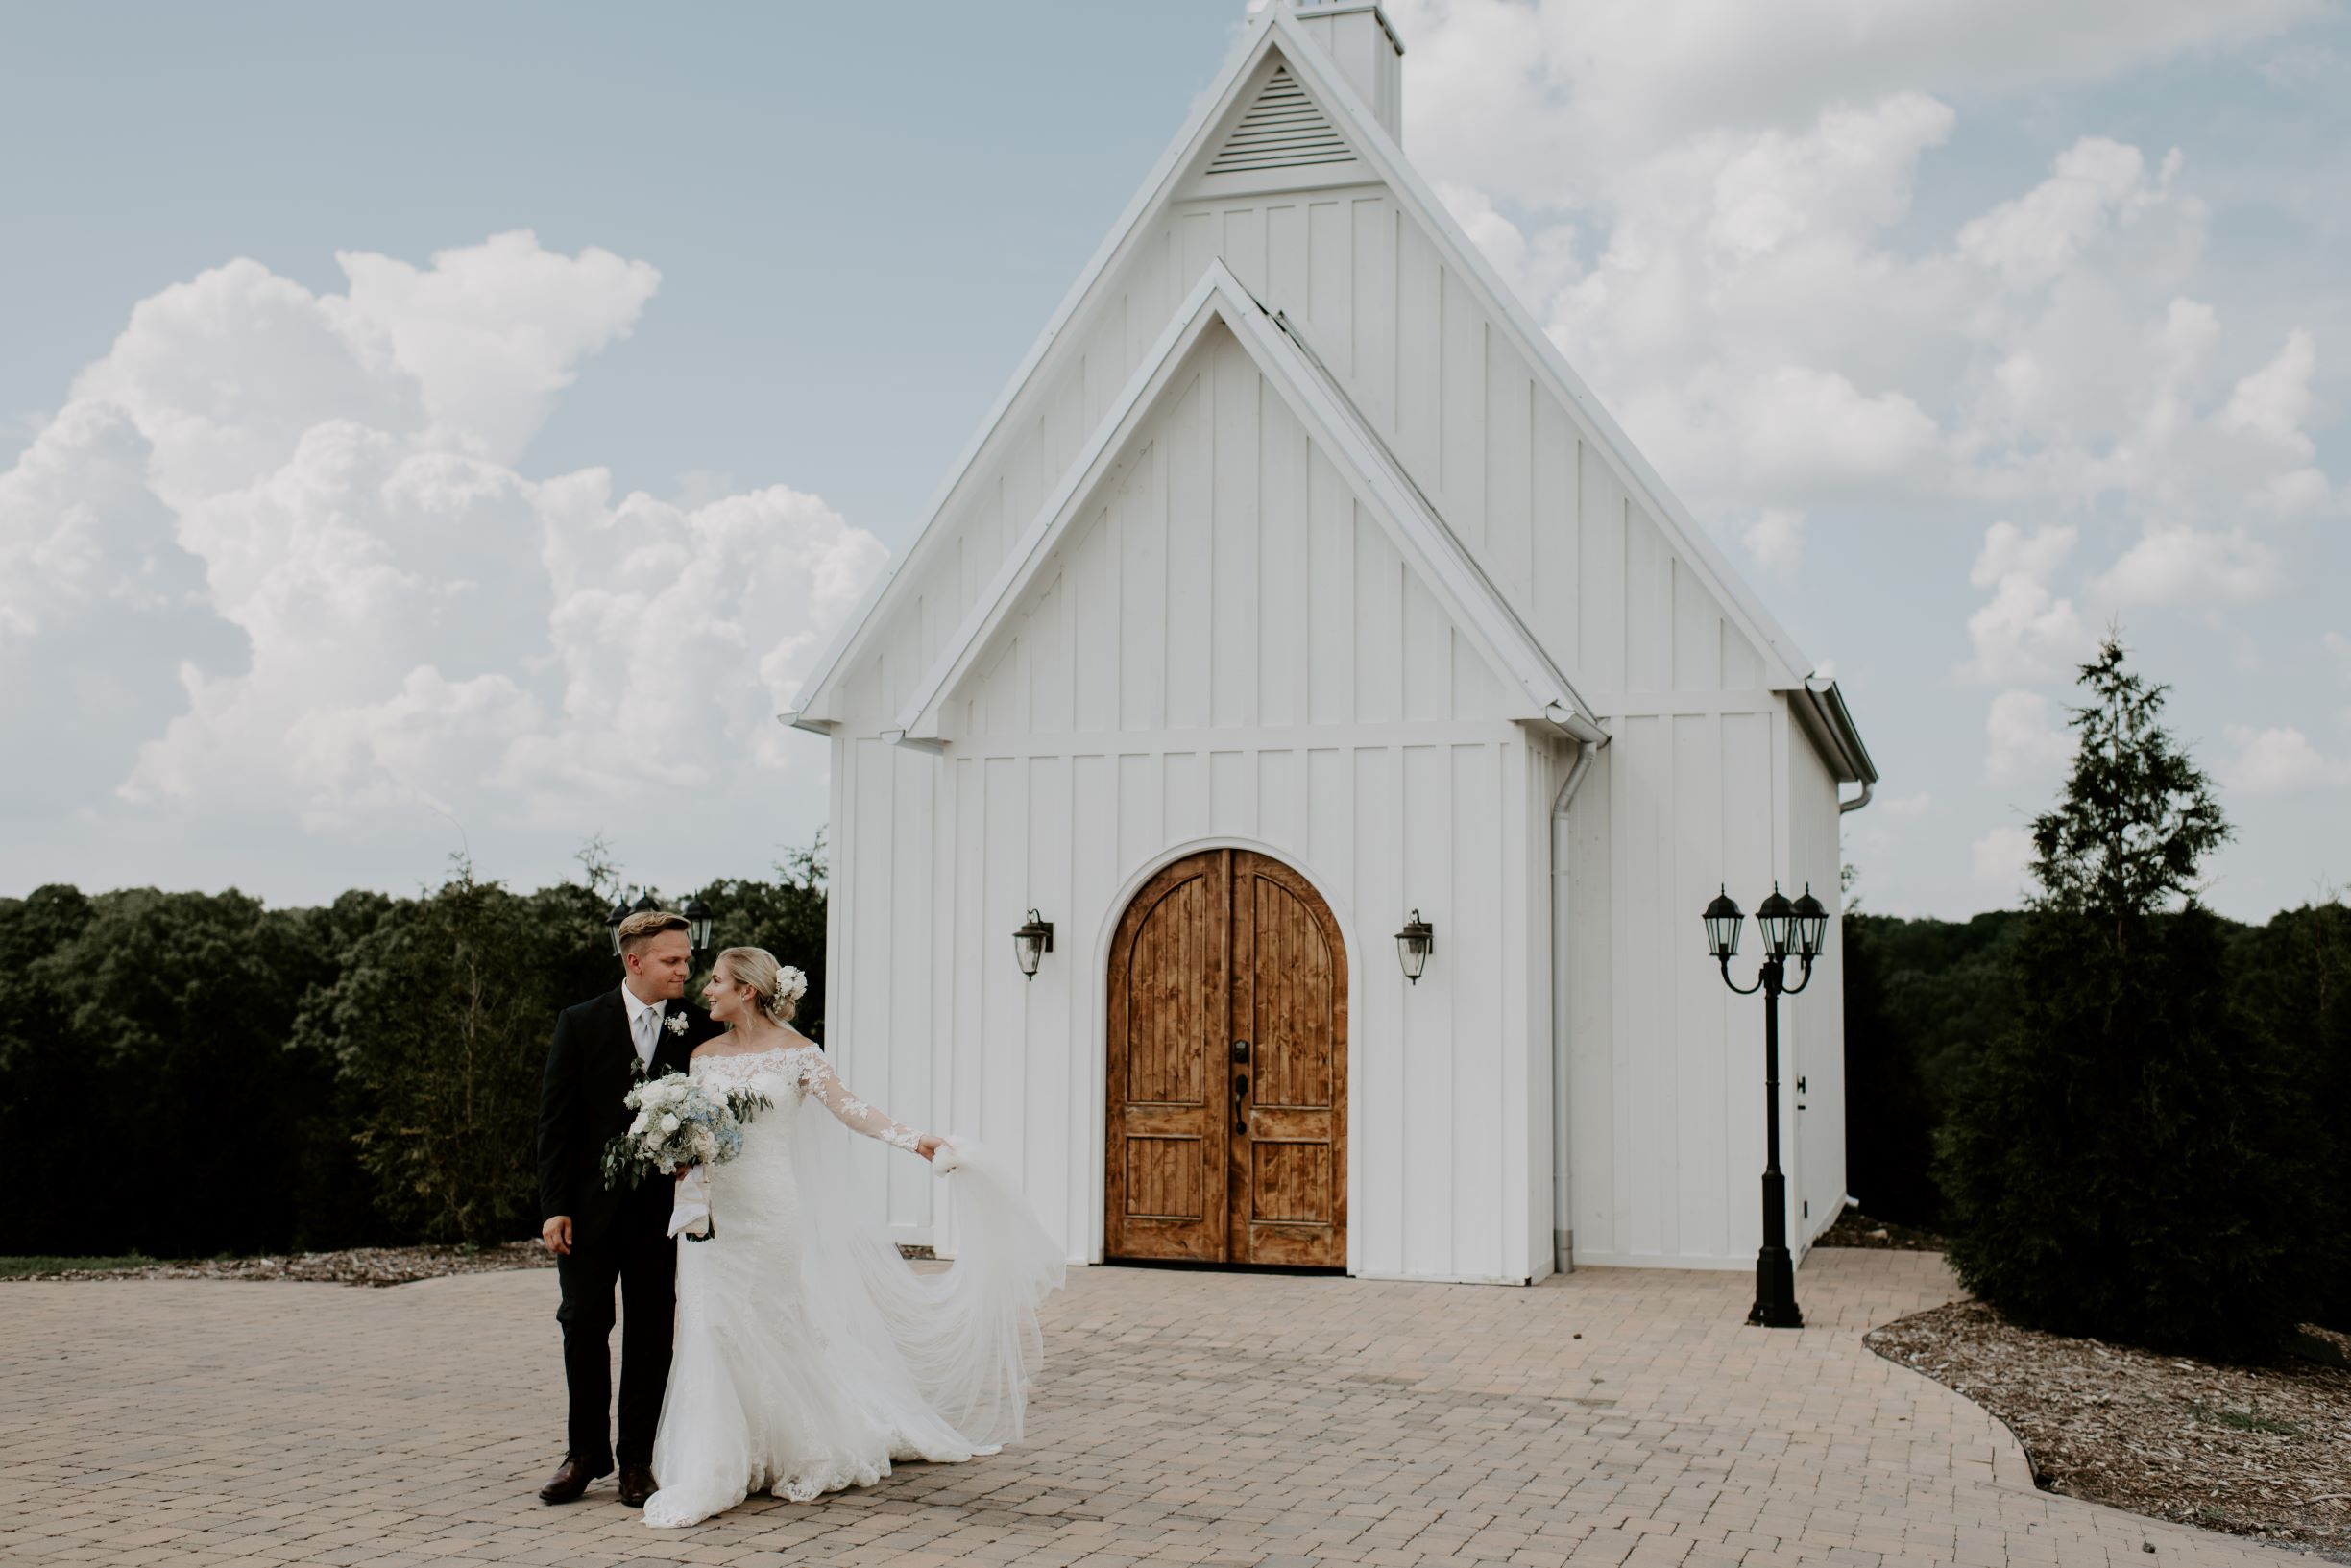 Our Highlands Chapel makes the most romantic classic Chattanooga wedding venue, perfect for your big day.